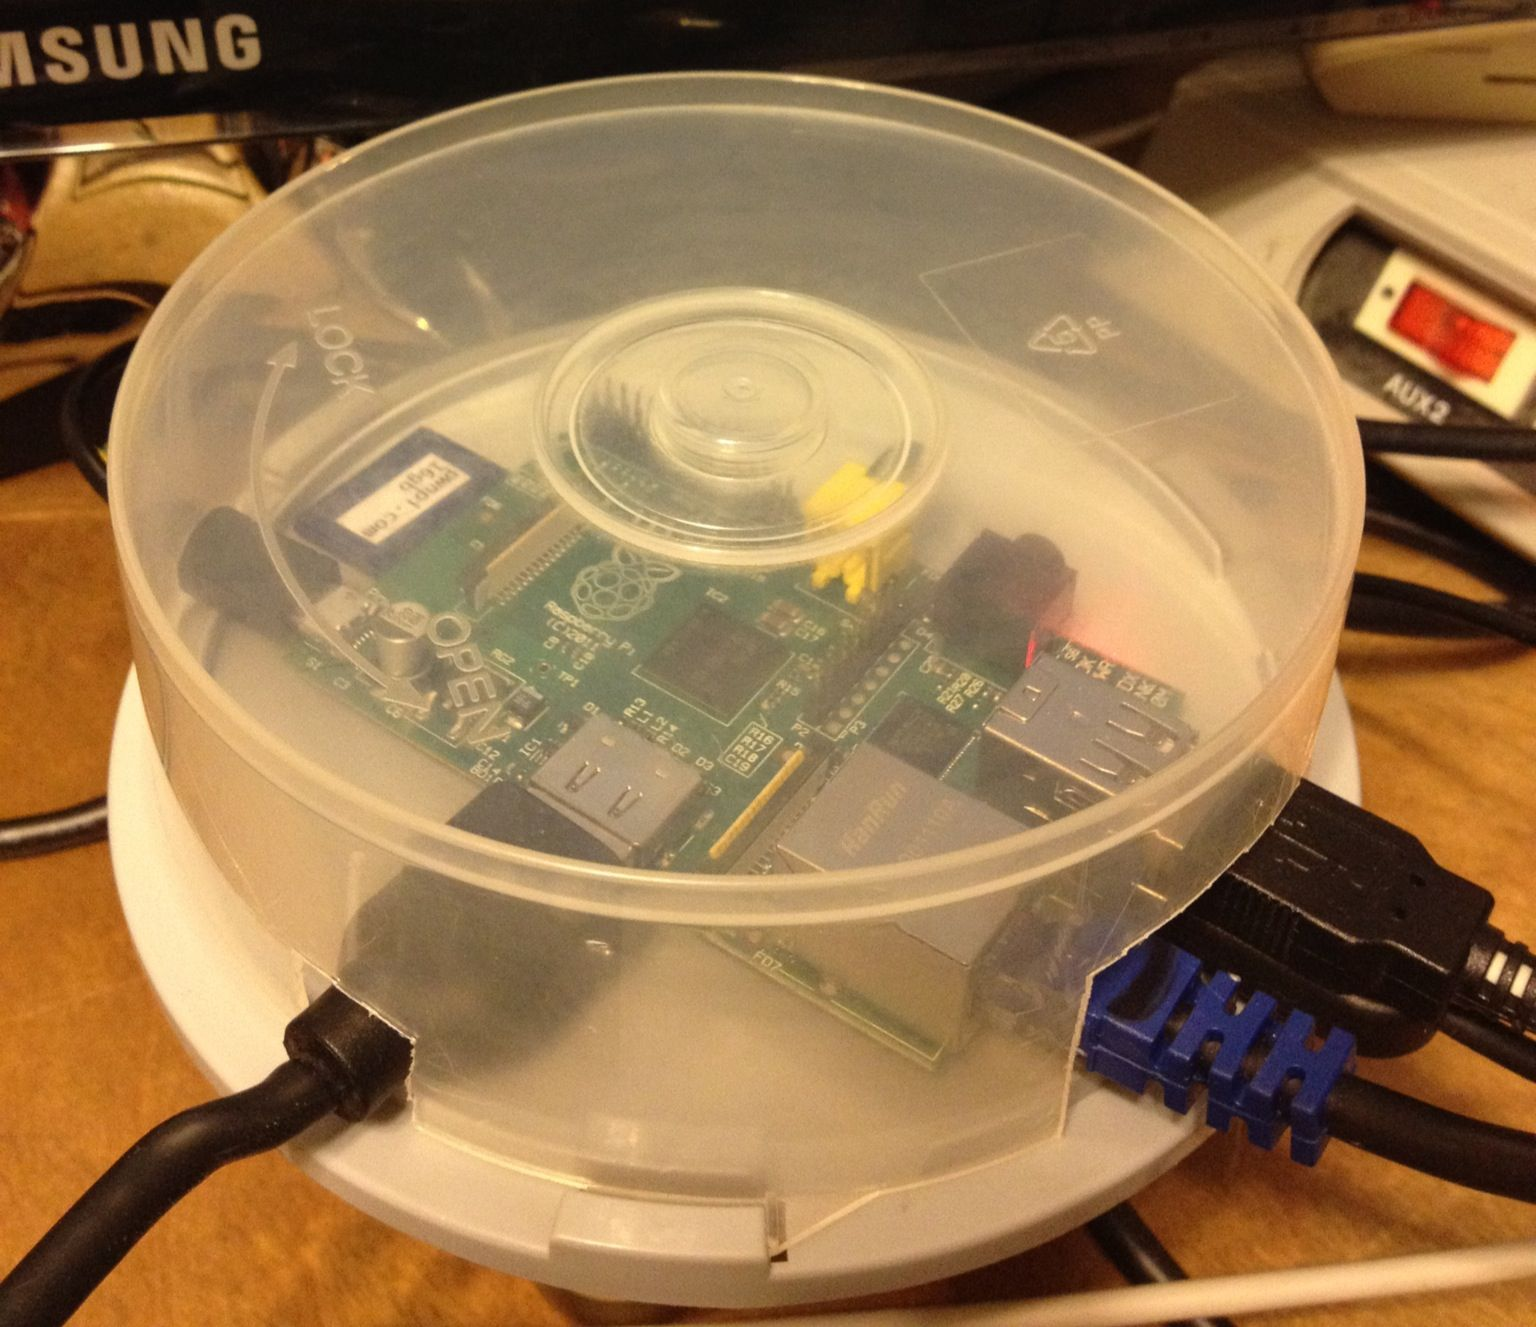 Raspberry pi case made from a cd case | Rasberry Pi | Pinterest | Cd ...